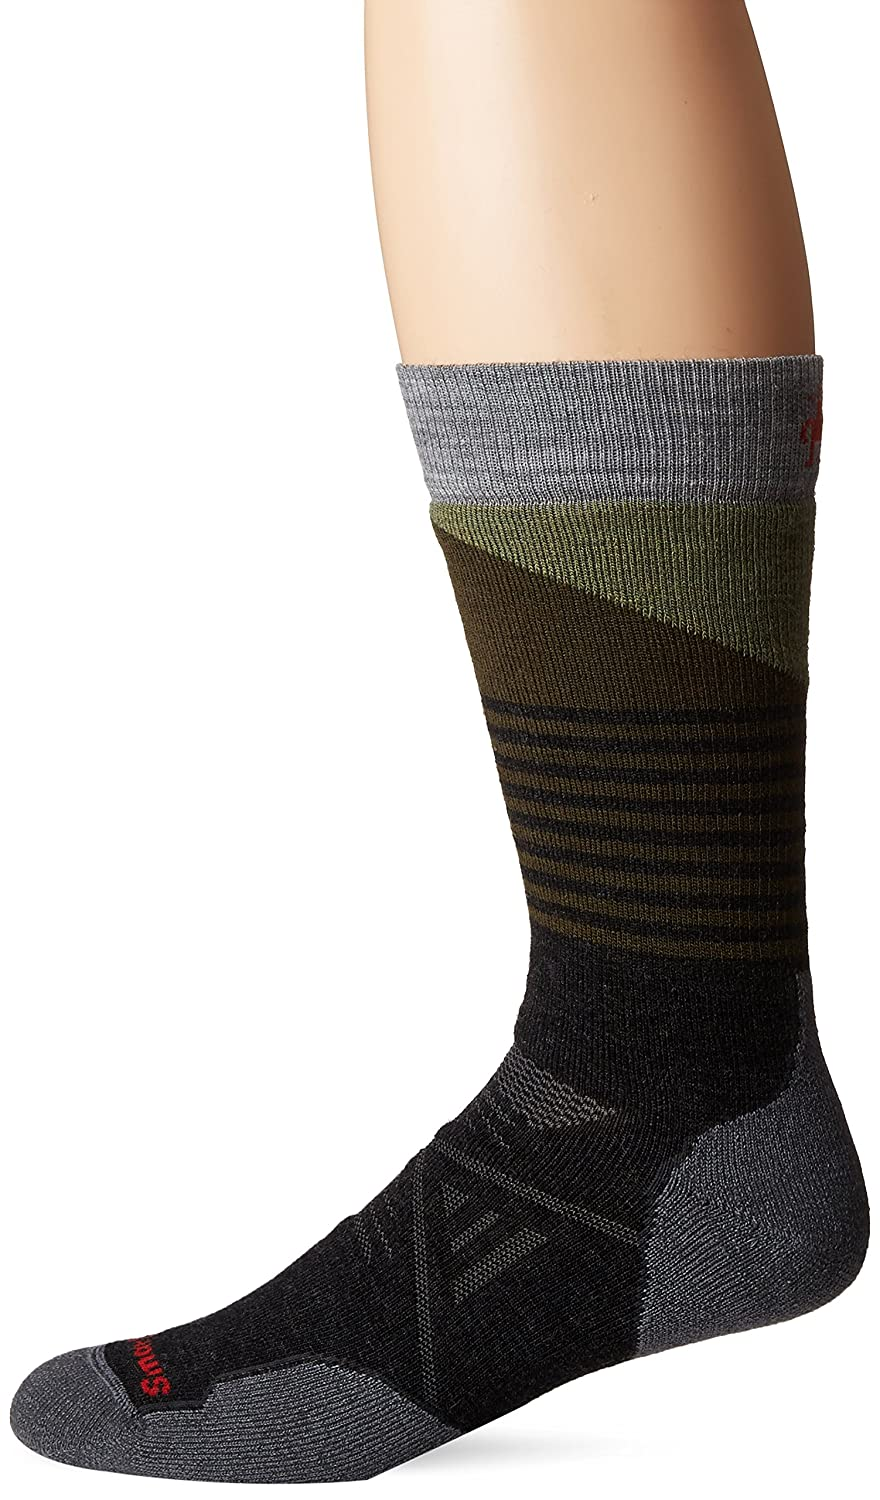 Smartwool Men's PhD Outdoor Medium Pattern Crew Socks (Charcoal) Large SW001209-003-L